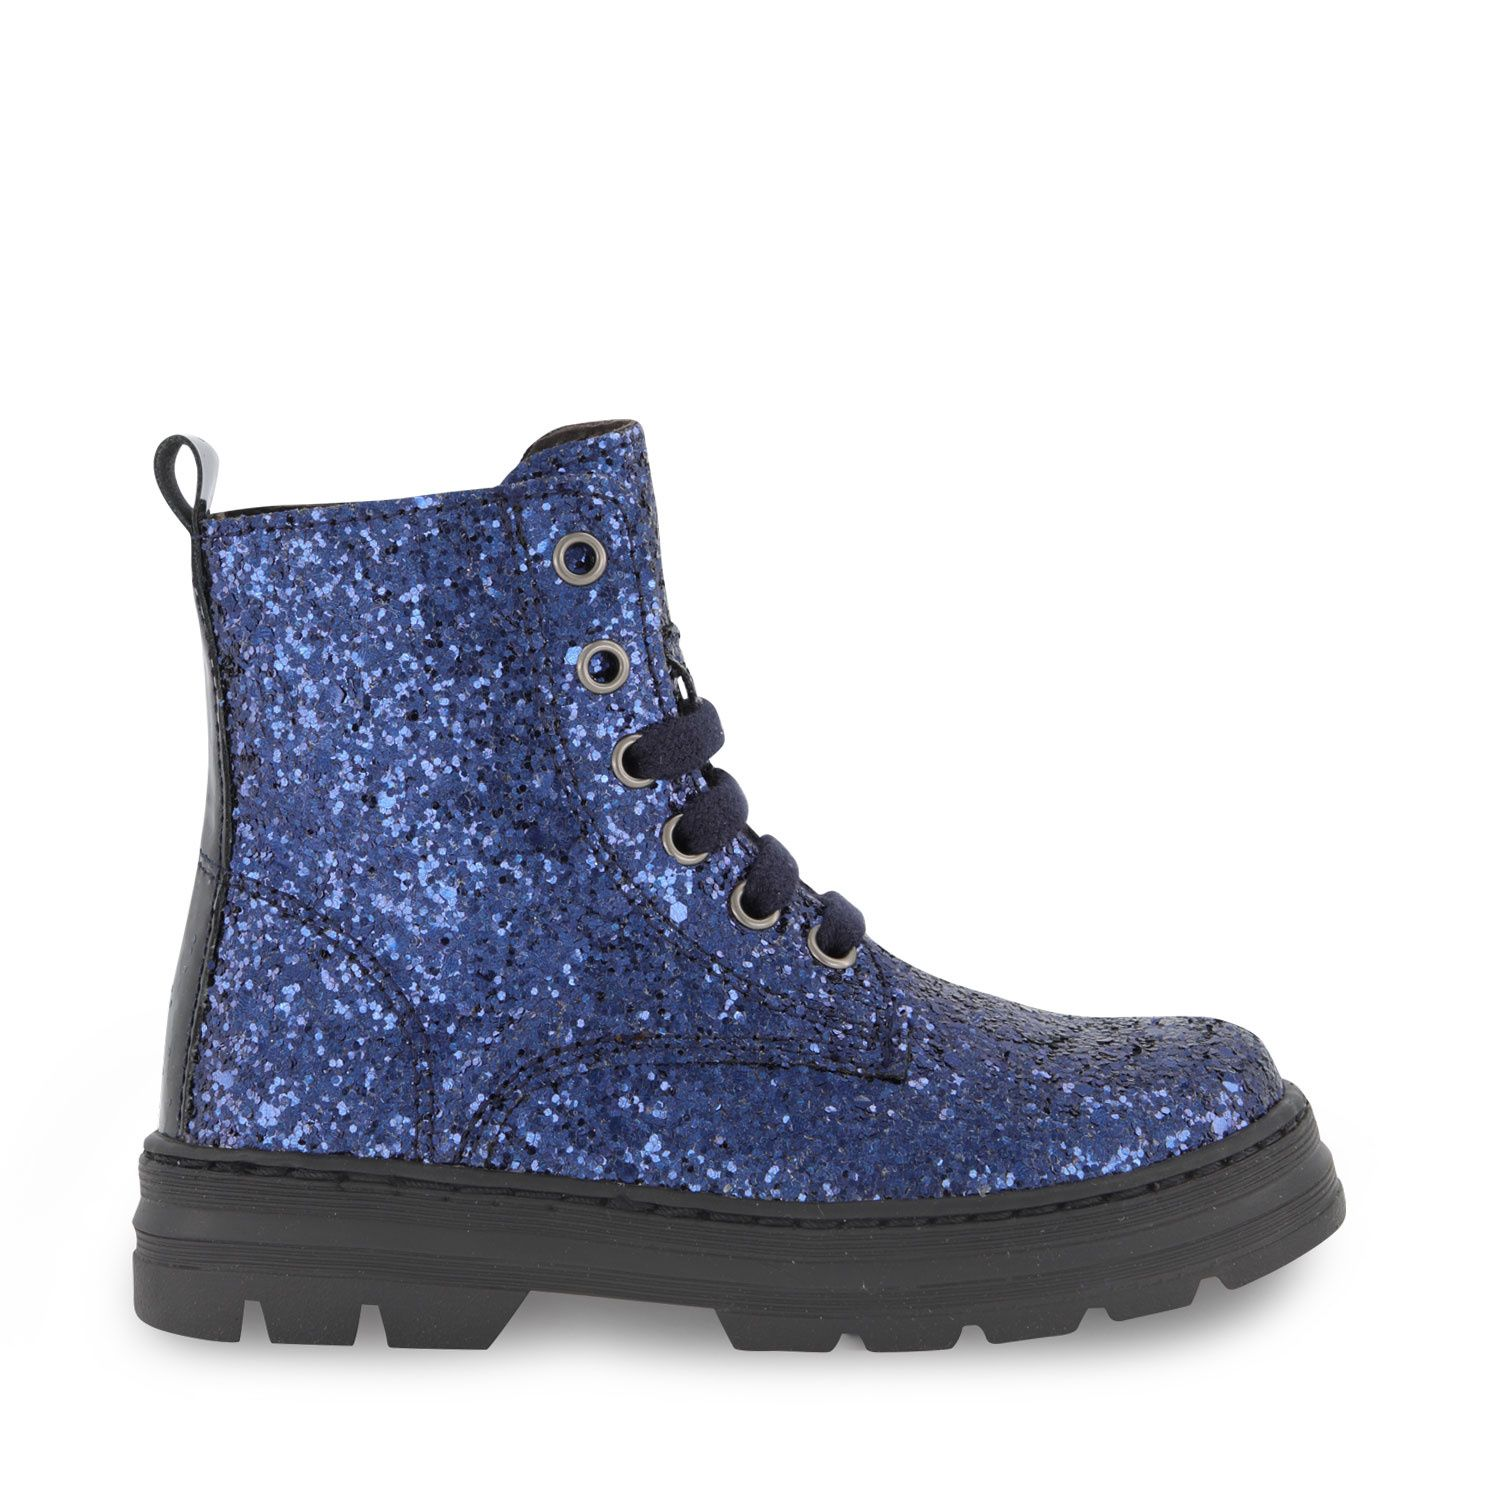 Picture of Clic 8834 kids boots navy